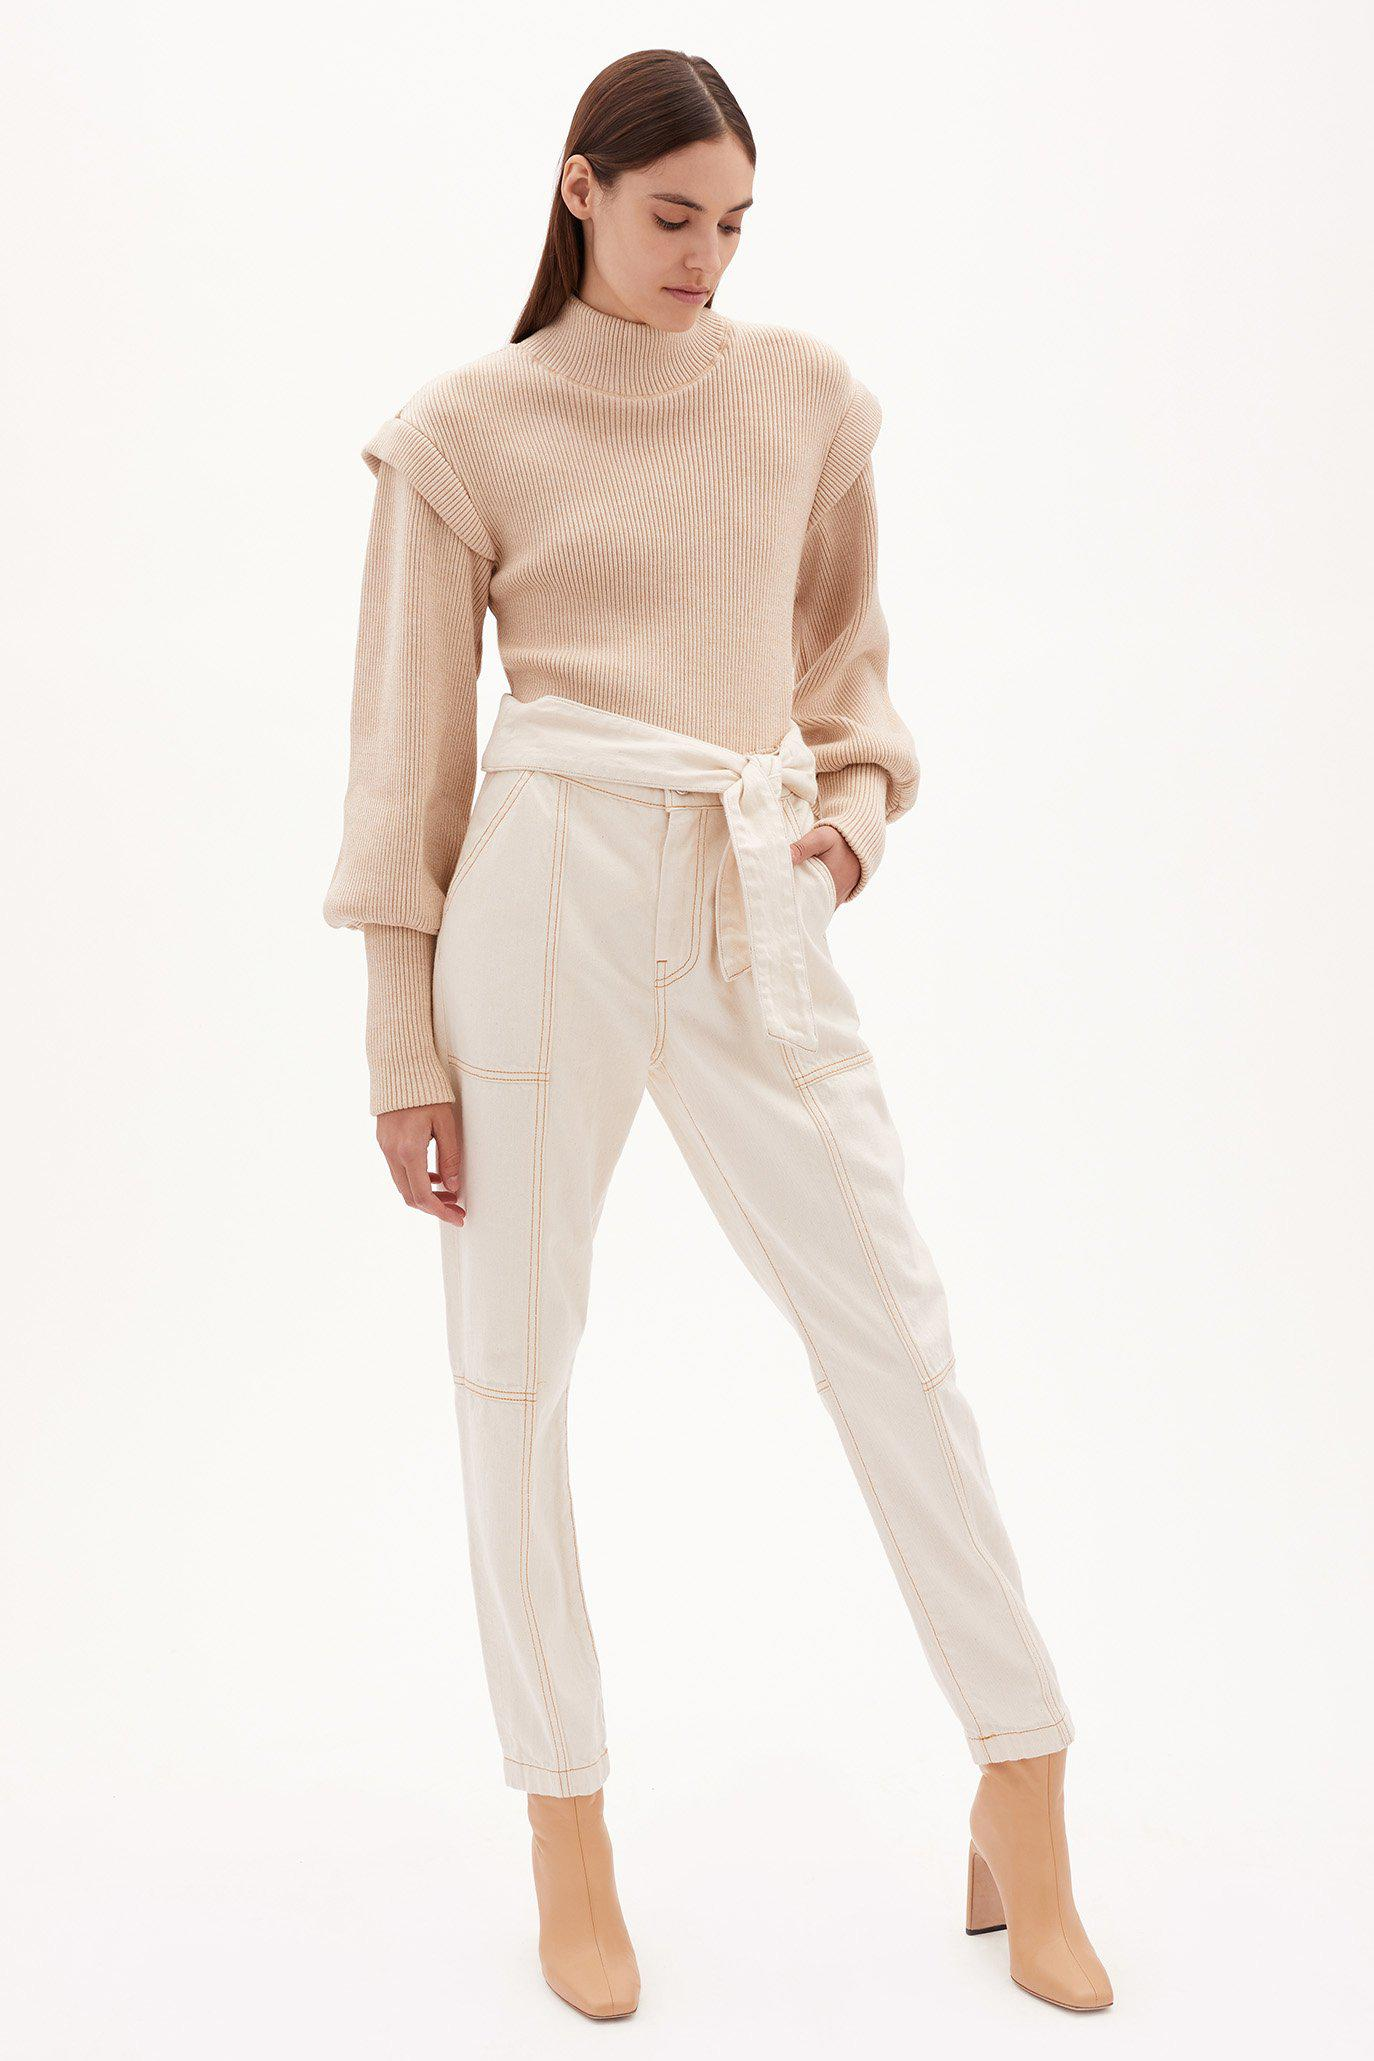 Max Recycled Knit Top 2